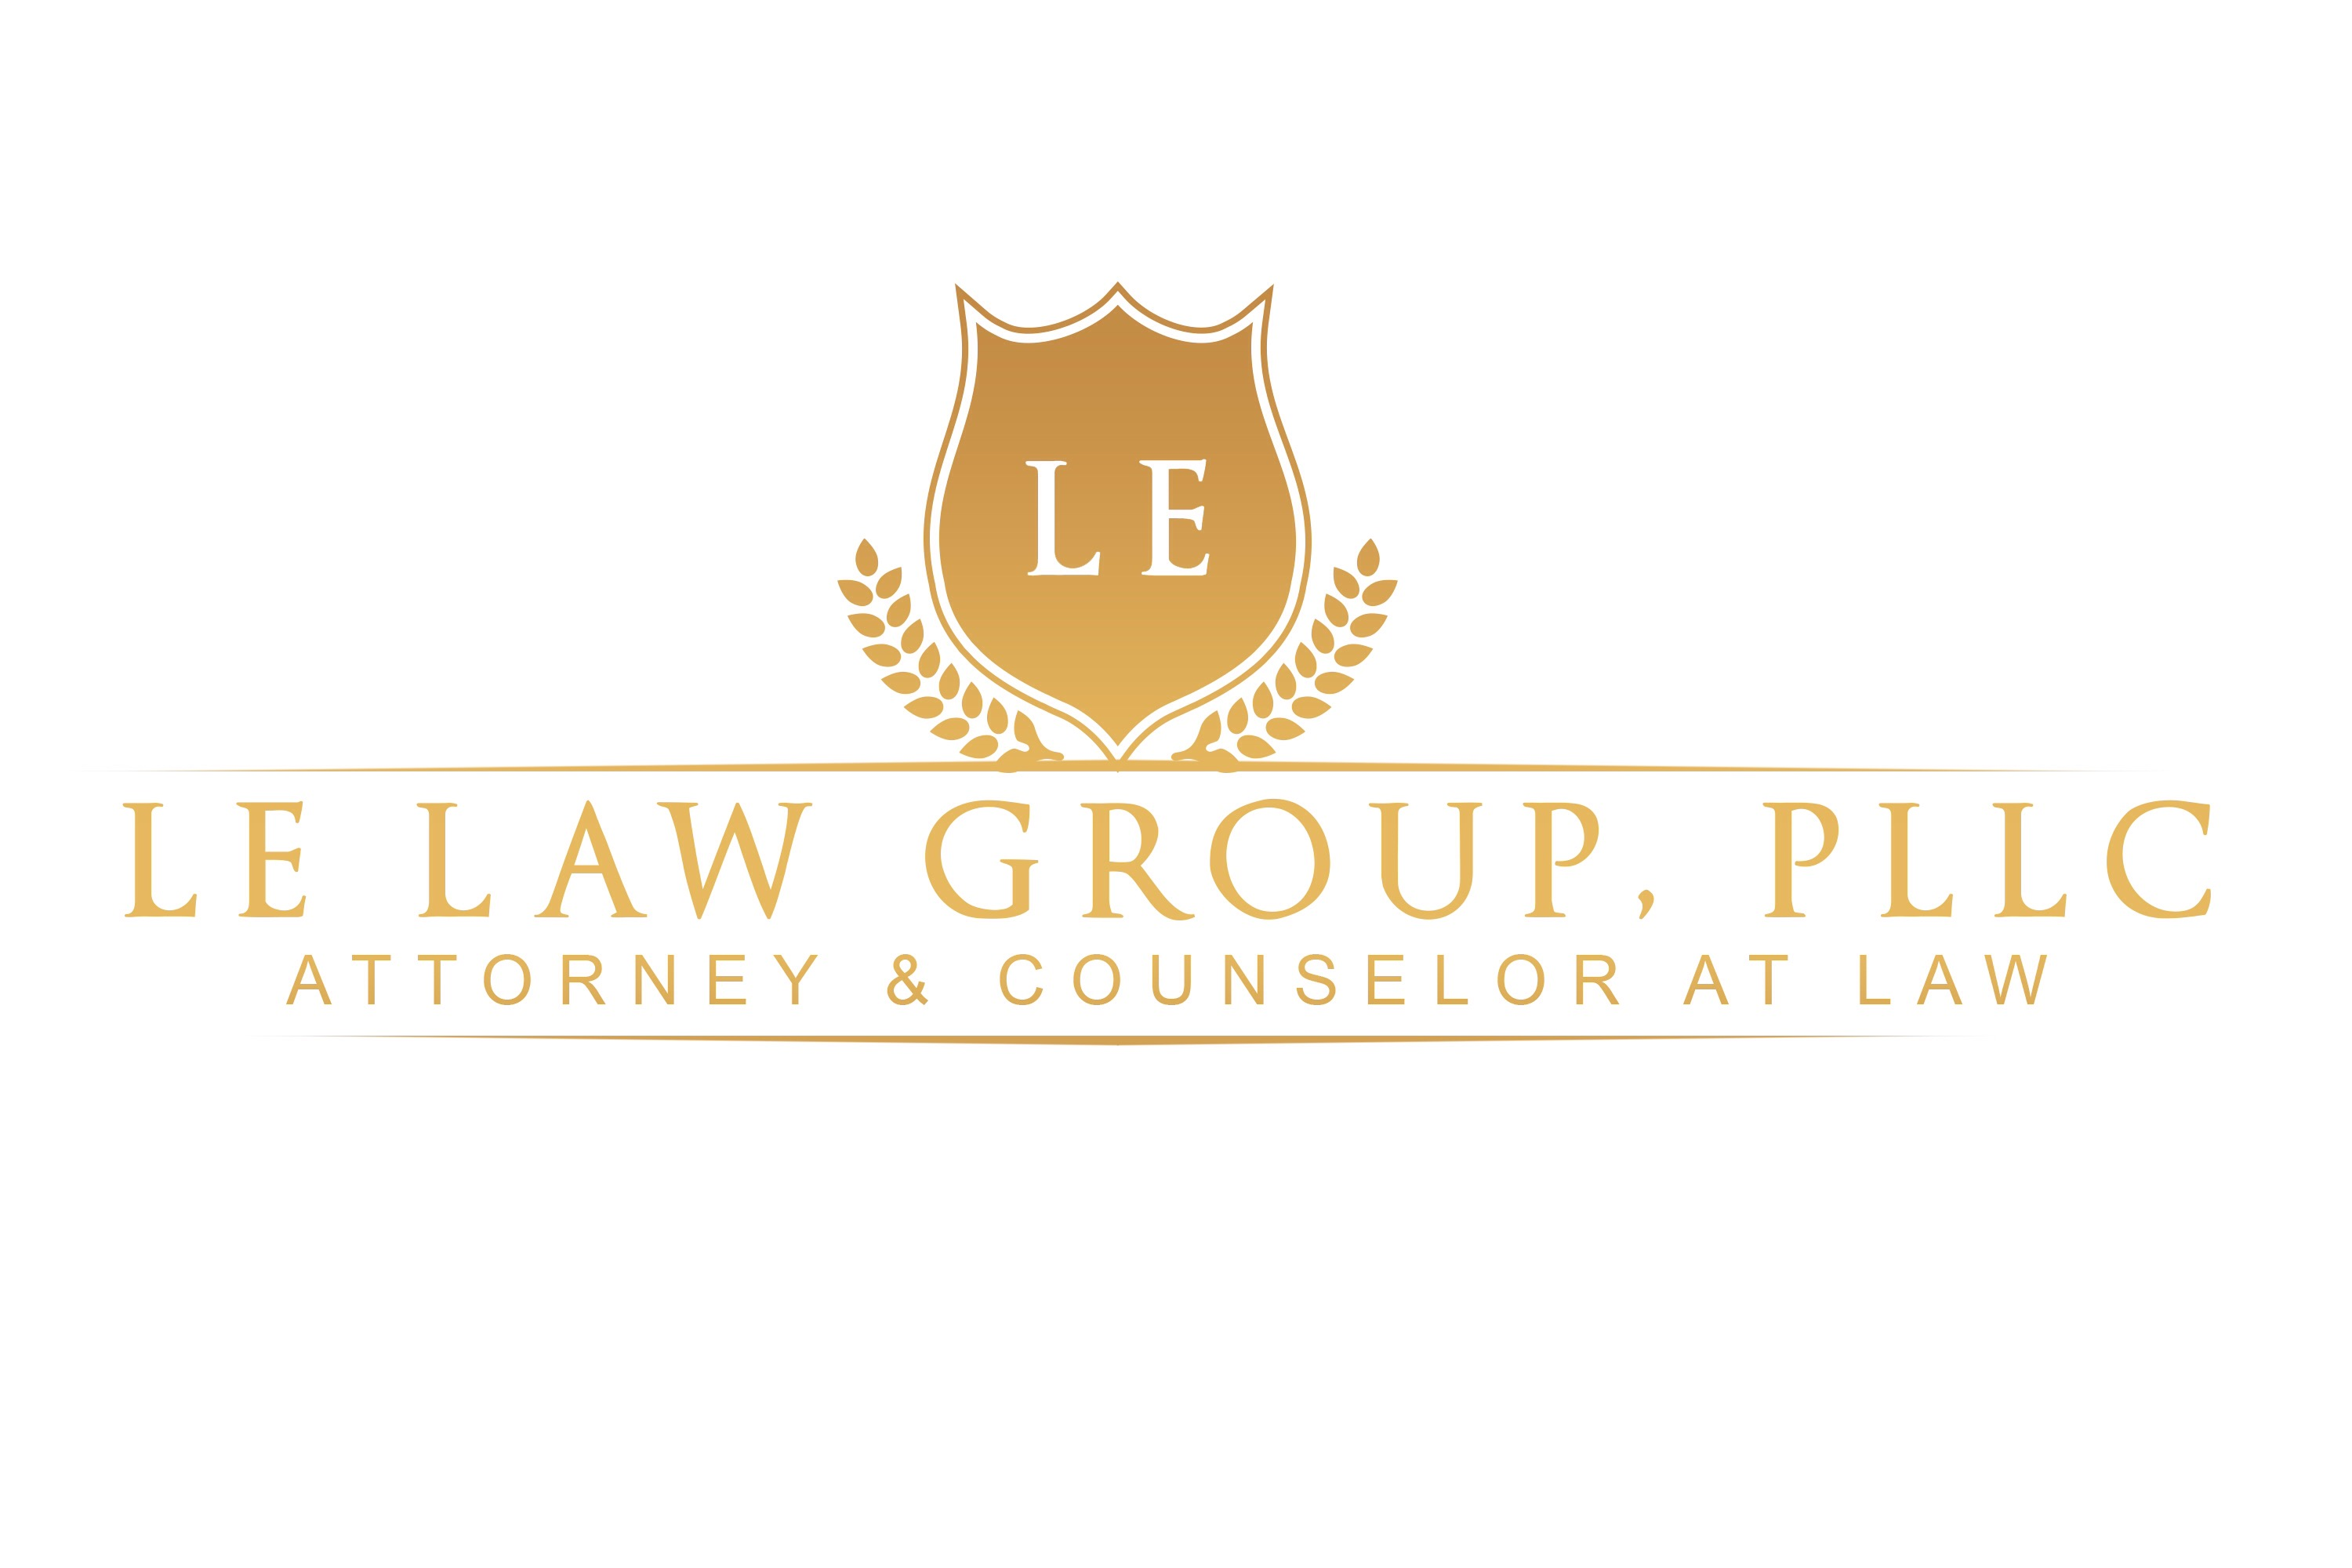 Le Law Group PLLC